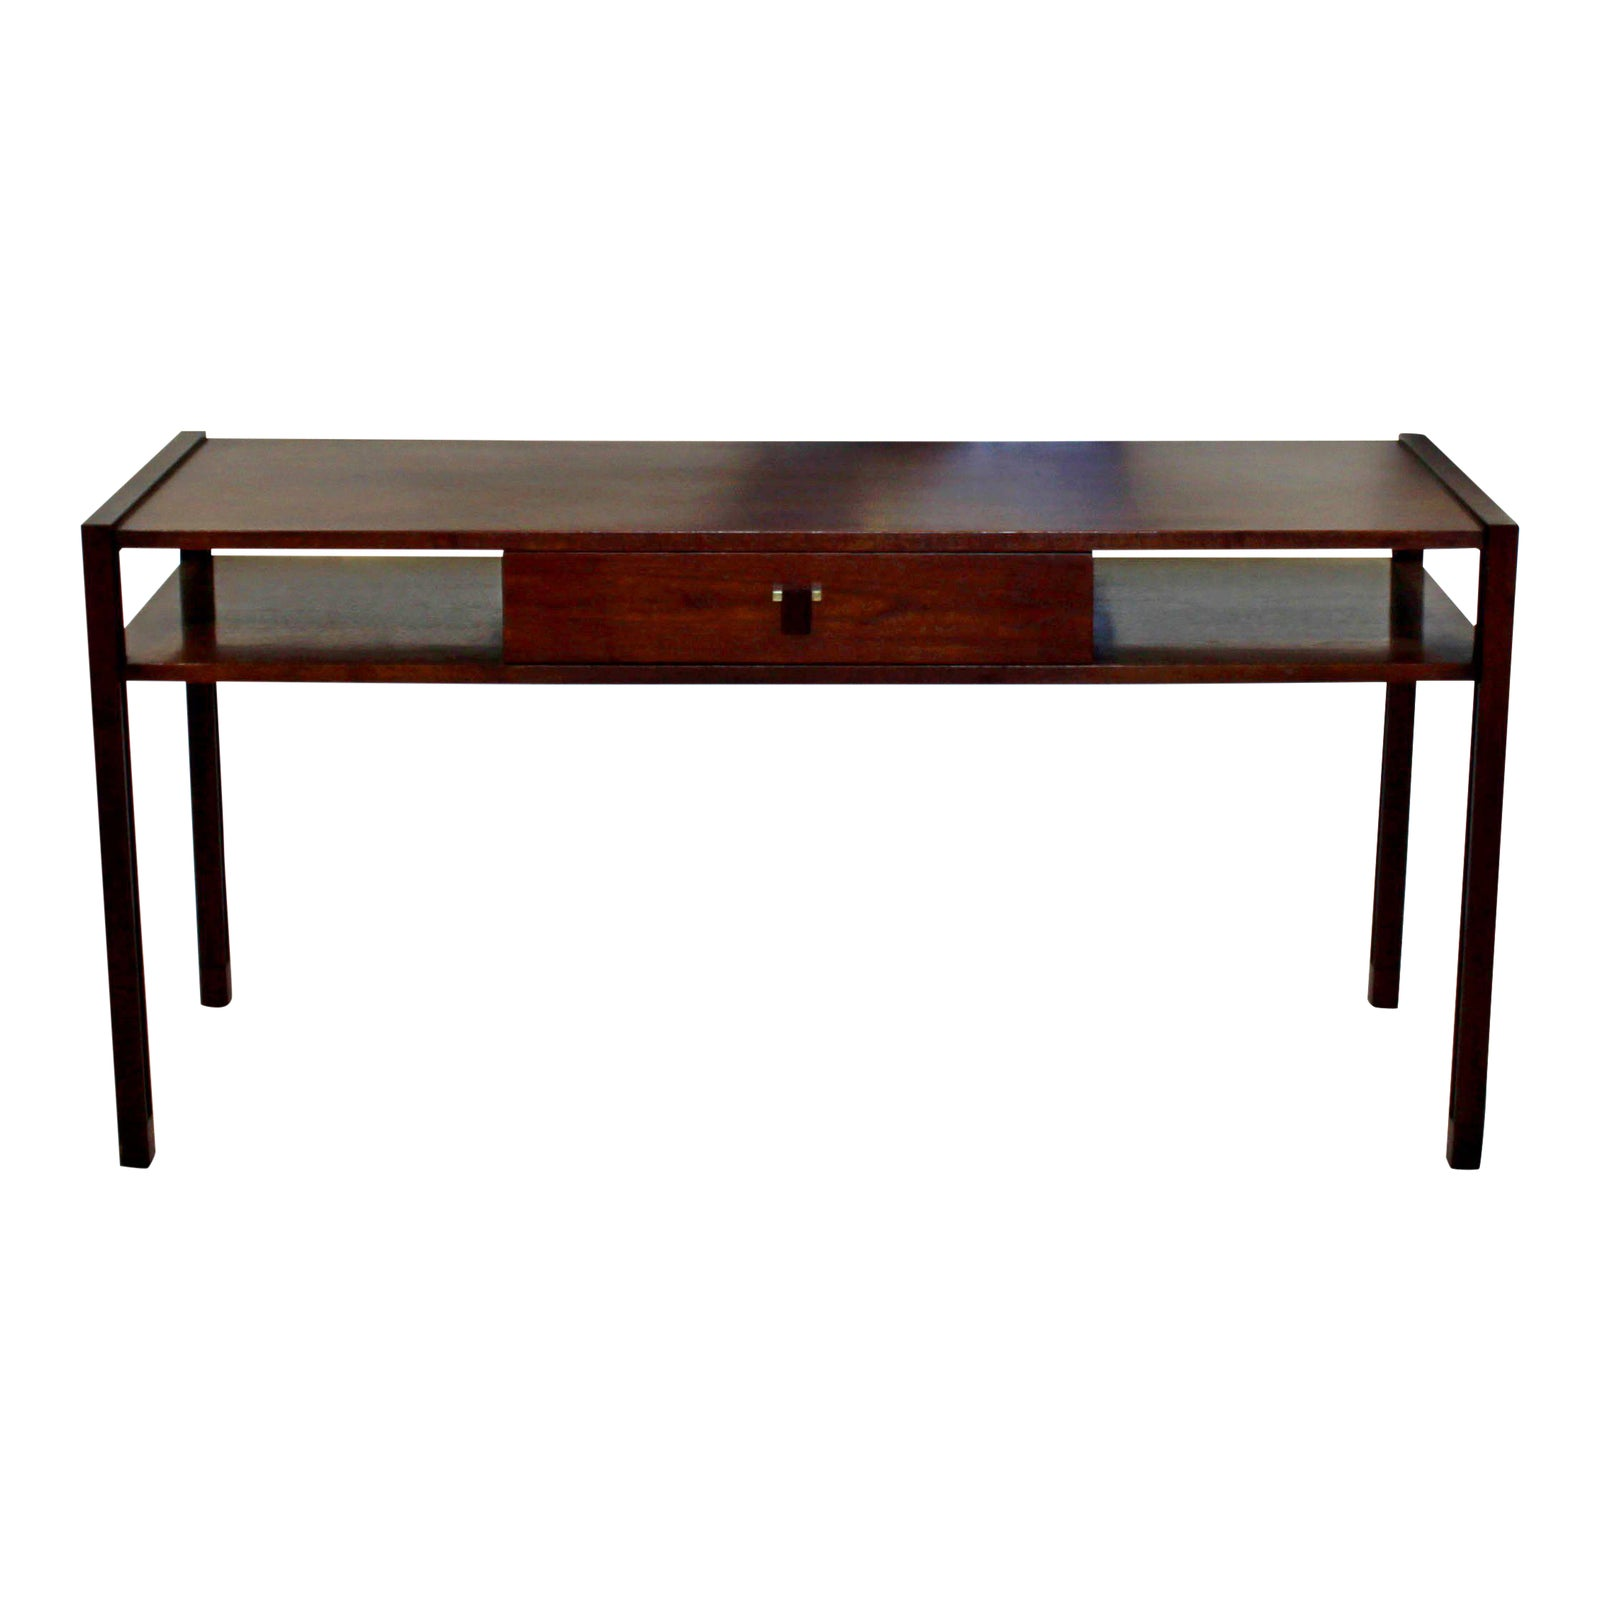 Exquisite Mid Century Modern Edward Wormley For Dunbar Sofa Console Table Walnut Rosewood Decaso